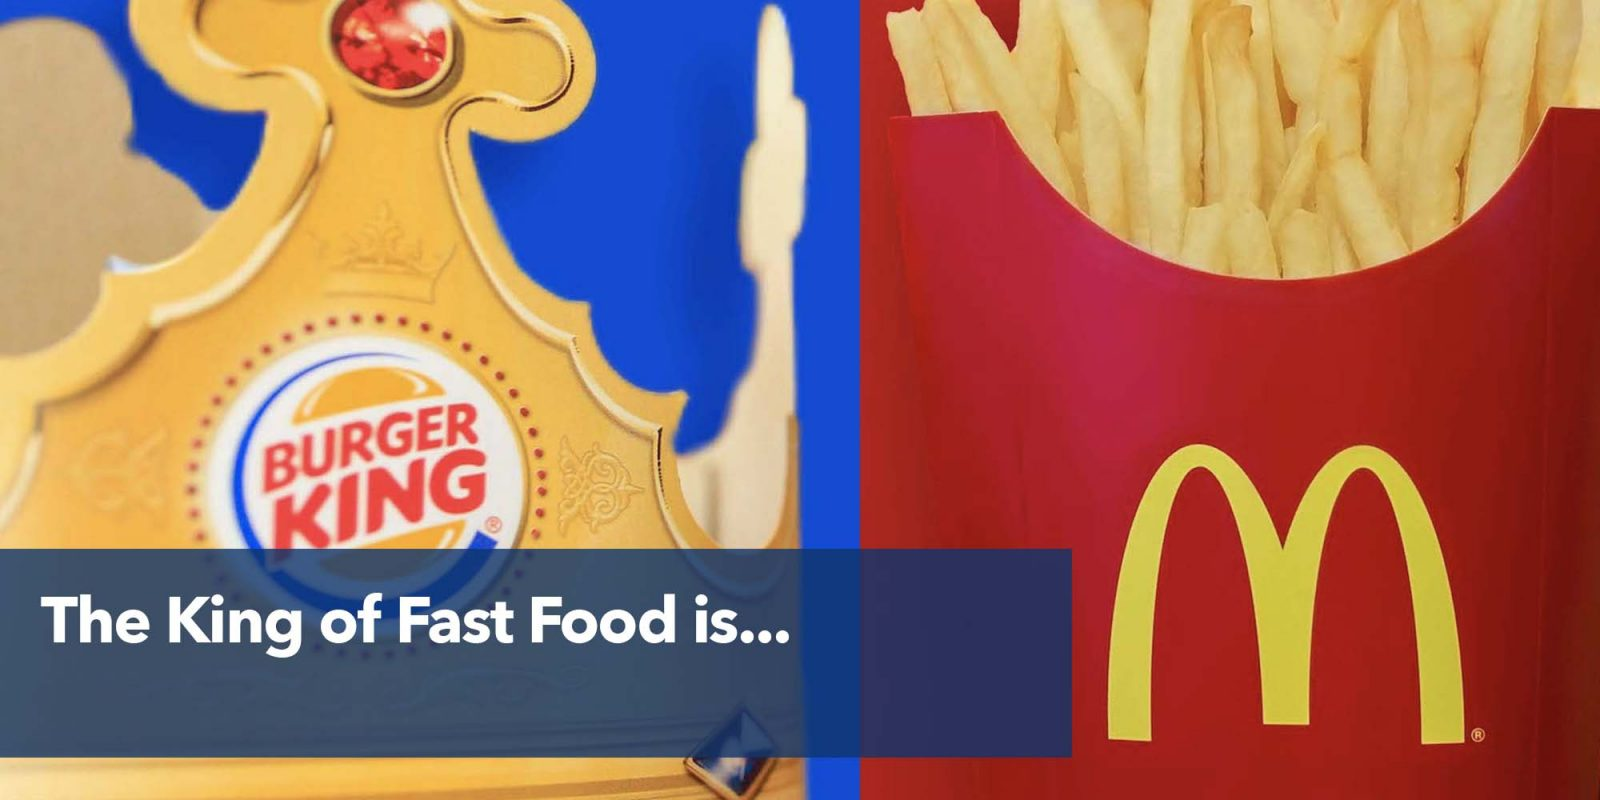 The King of Fast Food is…